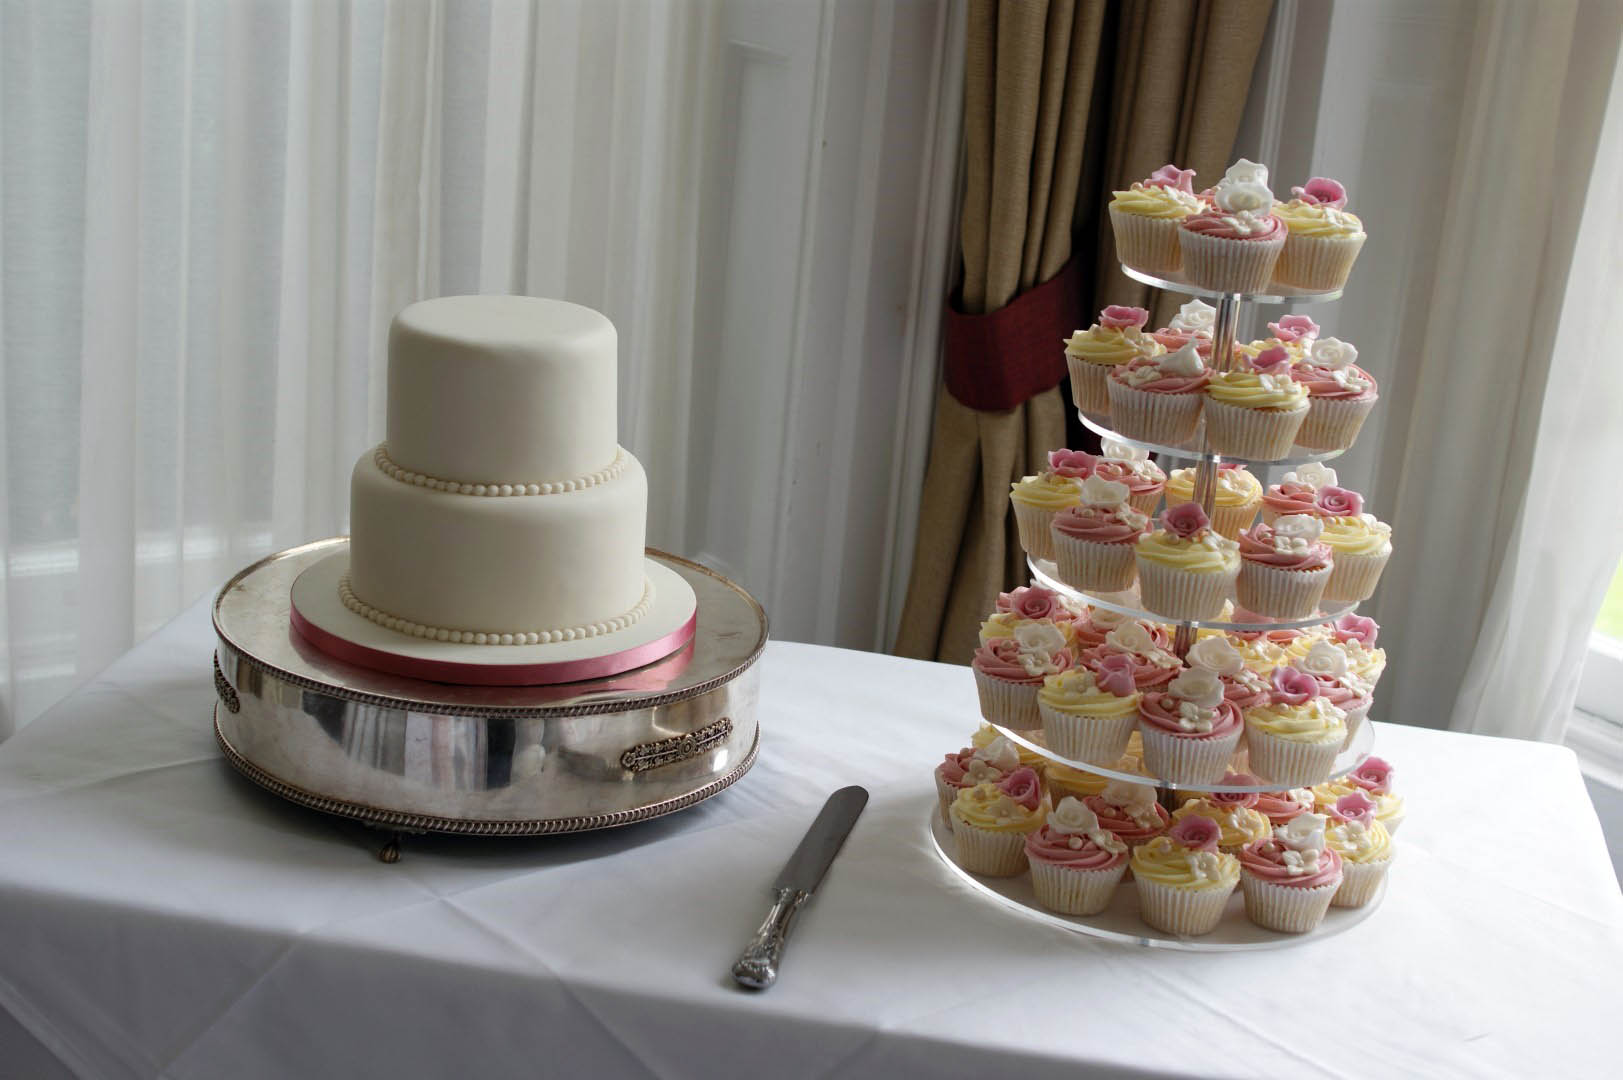 White Floral Wedding Cake With Cupcakes